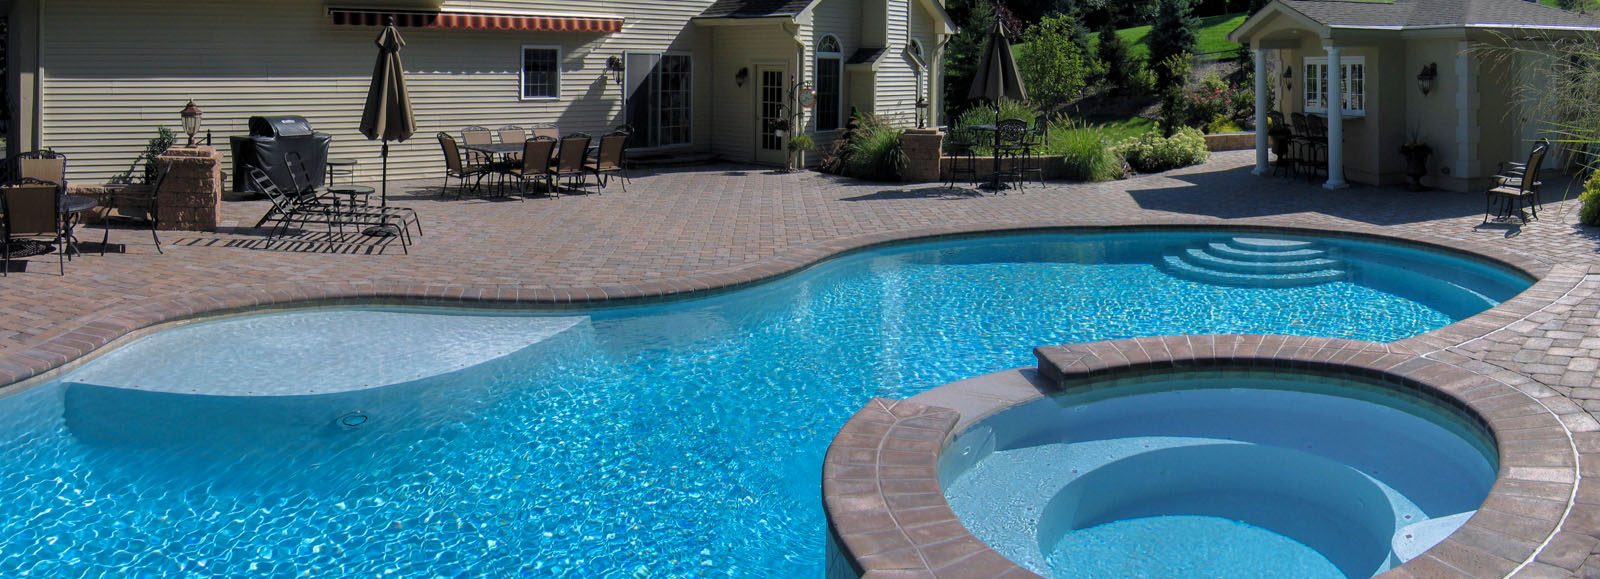 custom swimming pool with spa, pool house, and paver patio